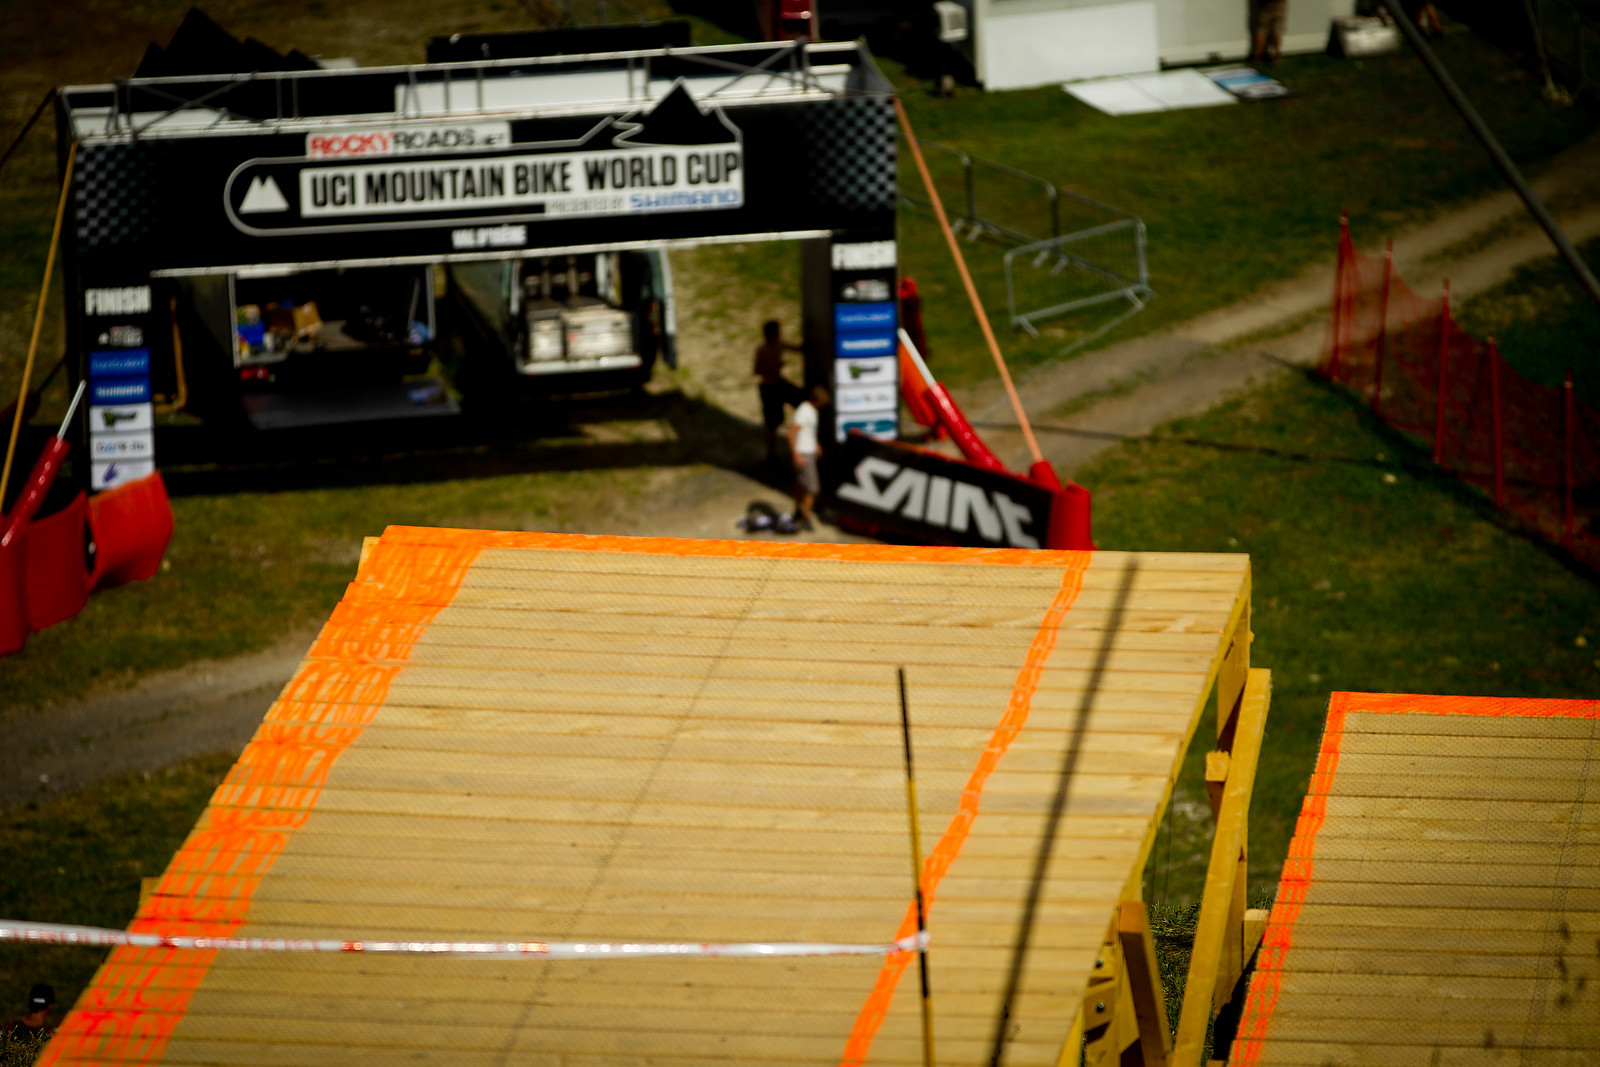 Mega Gnarly Finish Drop at Val d'Isere - 2012 UCI World Cup, Val d'Isere, France, Day 1 - Mountain Biking Pictures - Vital MTB